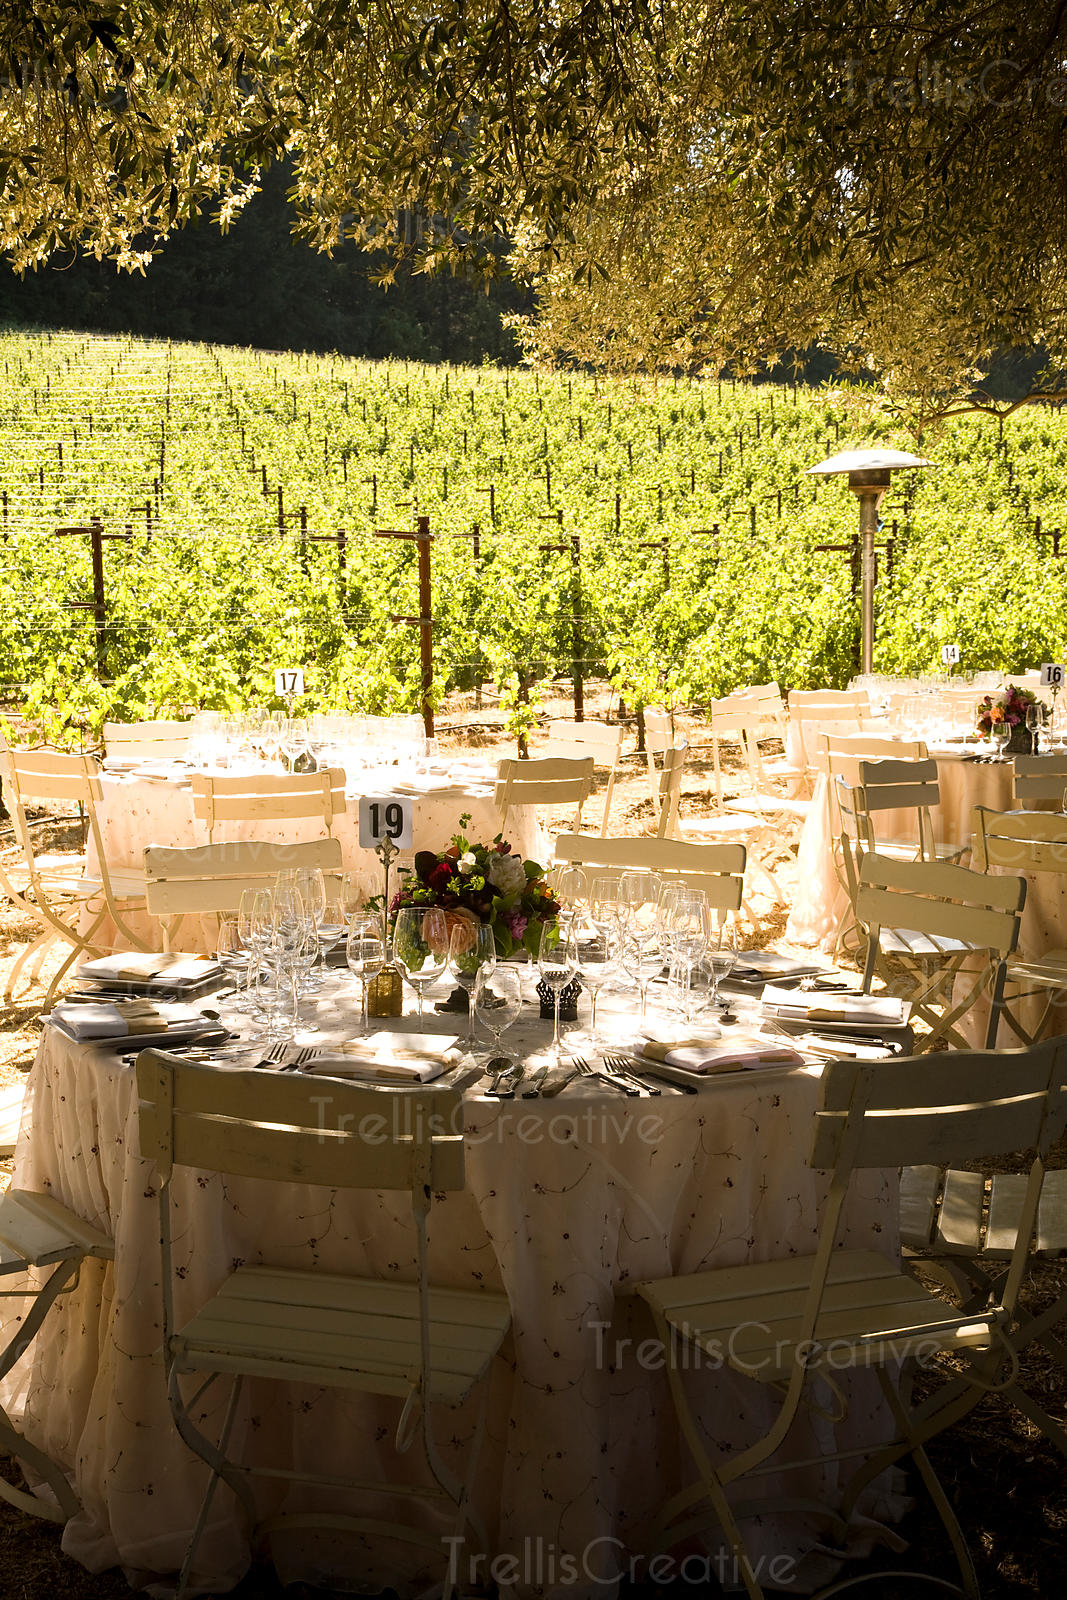 The sun shines on tables set for a party beneath an old olive grove